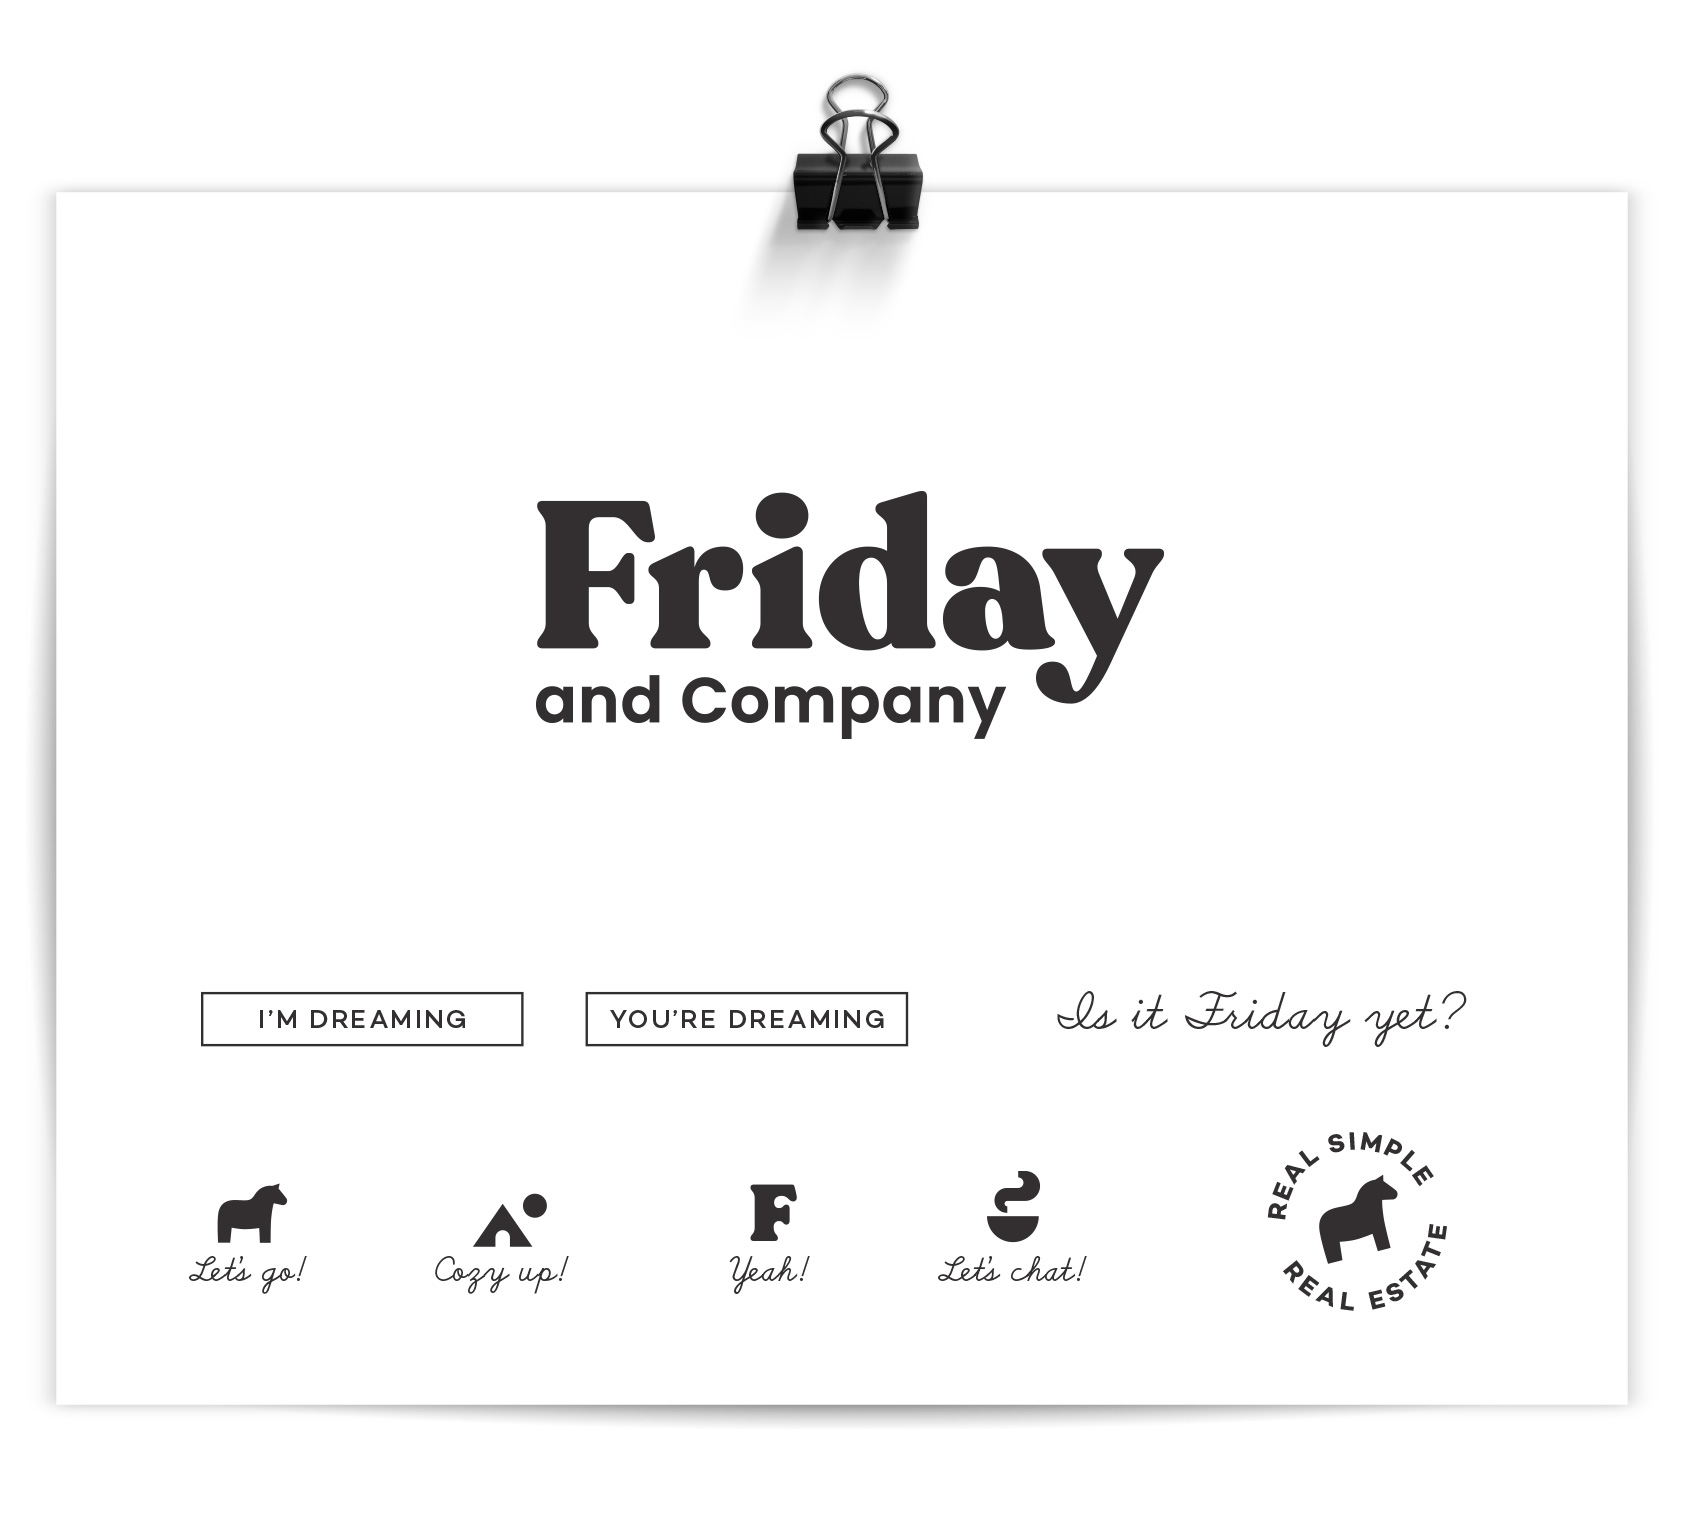 "Friday and Company logo with text styled buttons, font selections, and a series of small icons including a dala horse ""real simple real estate"" badge."